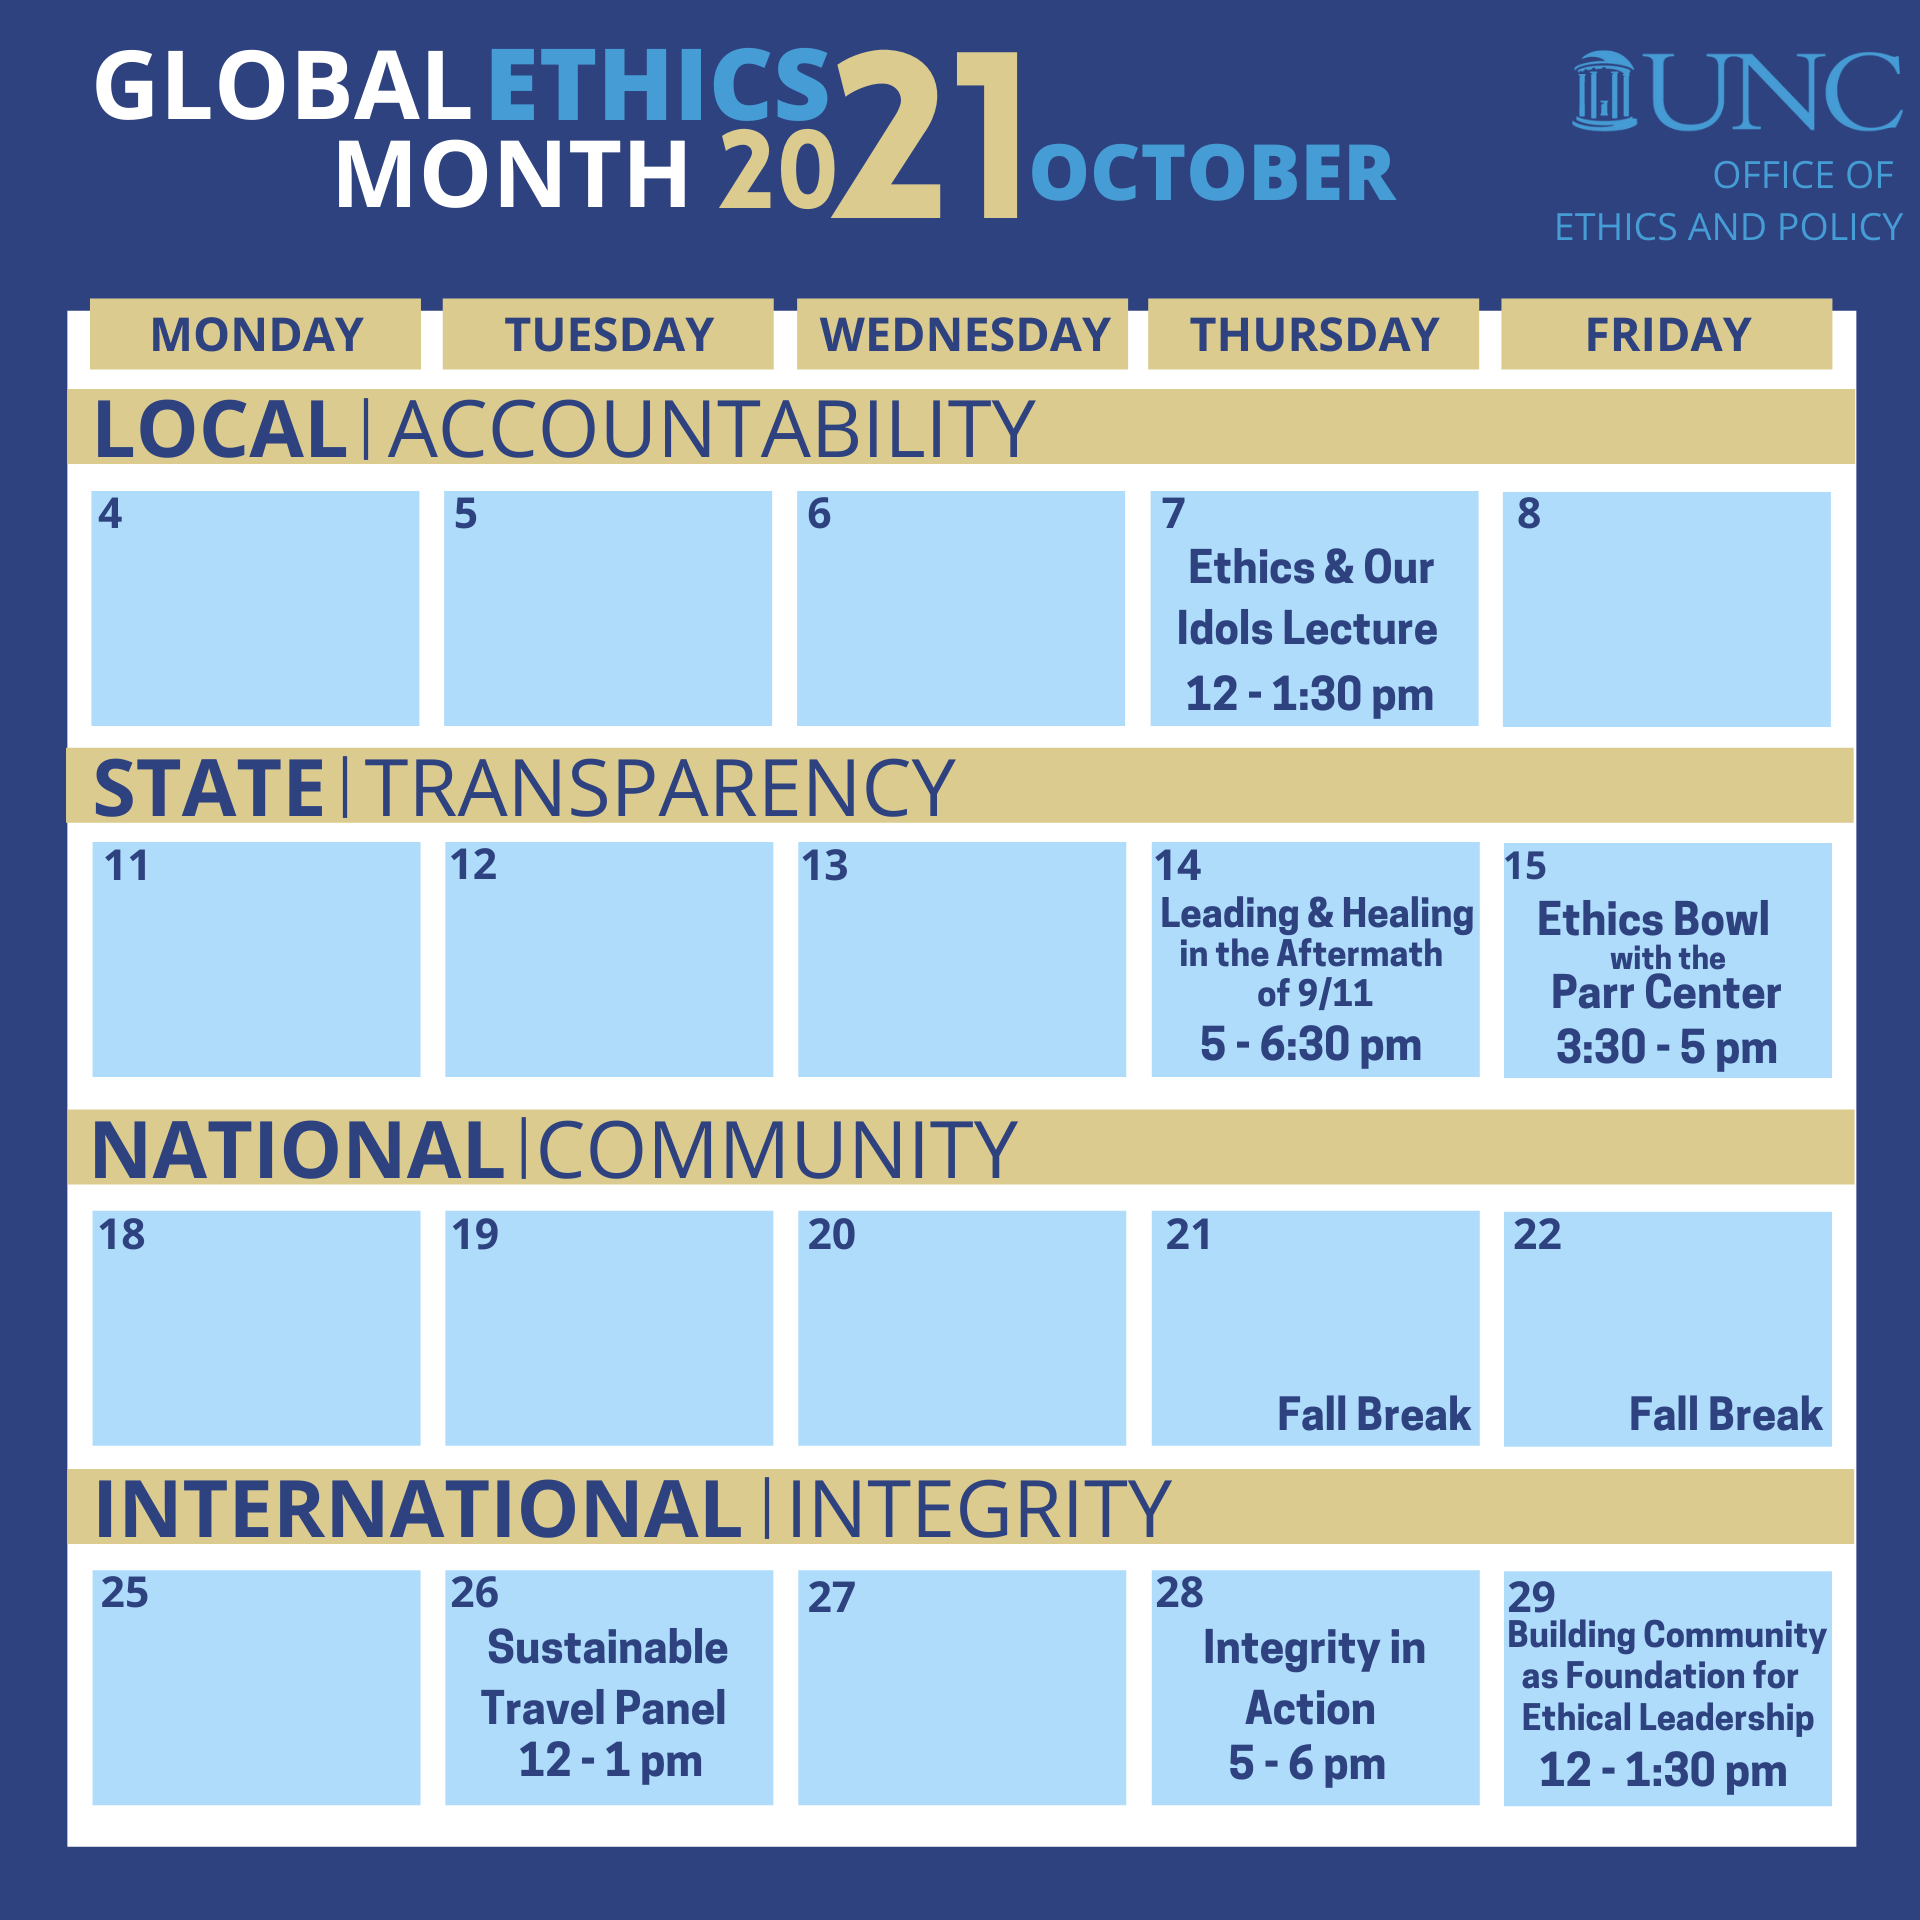 Calendar Graphic displaying Global Ethics Month events hosted by UNC Ethics and Policy